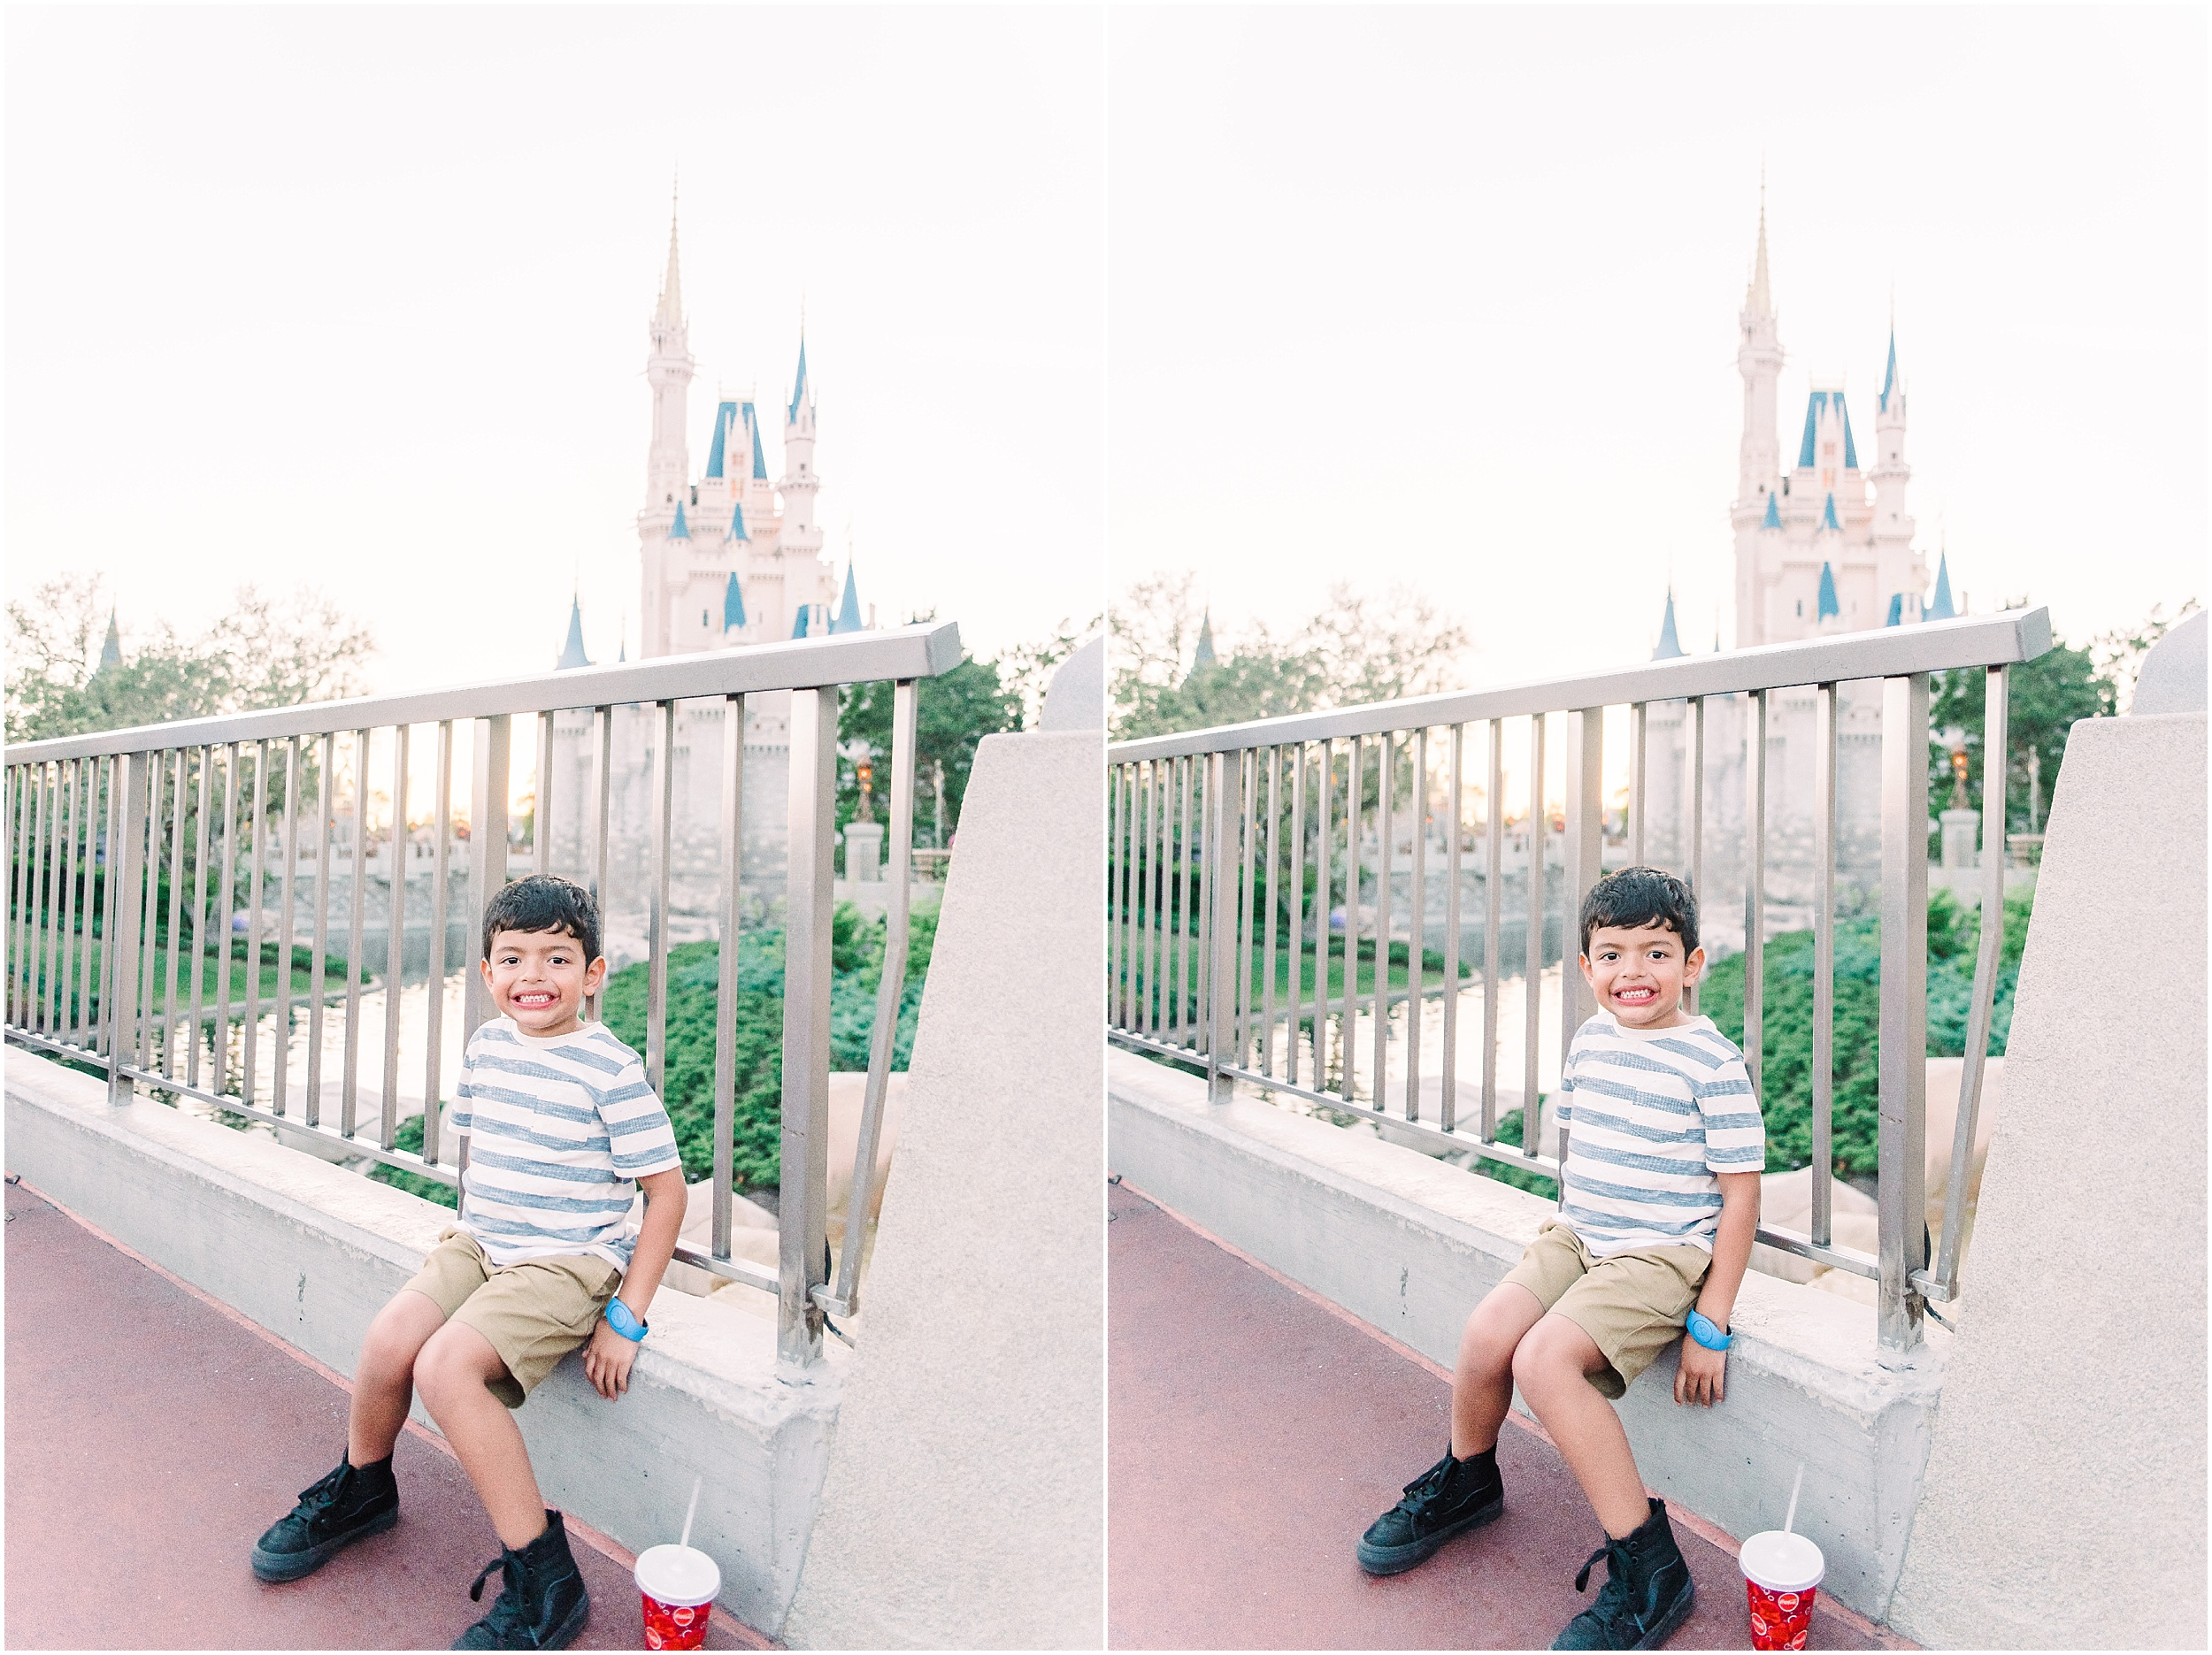 Ventura-California-and-Tallahassee-Florida-Wedding-Photographer-Mateo-turns-five-at-Disney-World-in-Orlando-Florida_0017.jpg